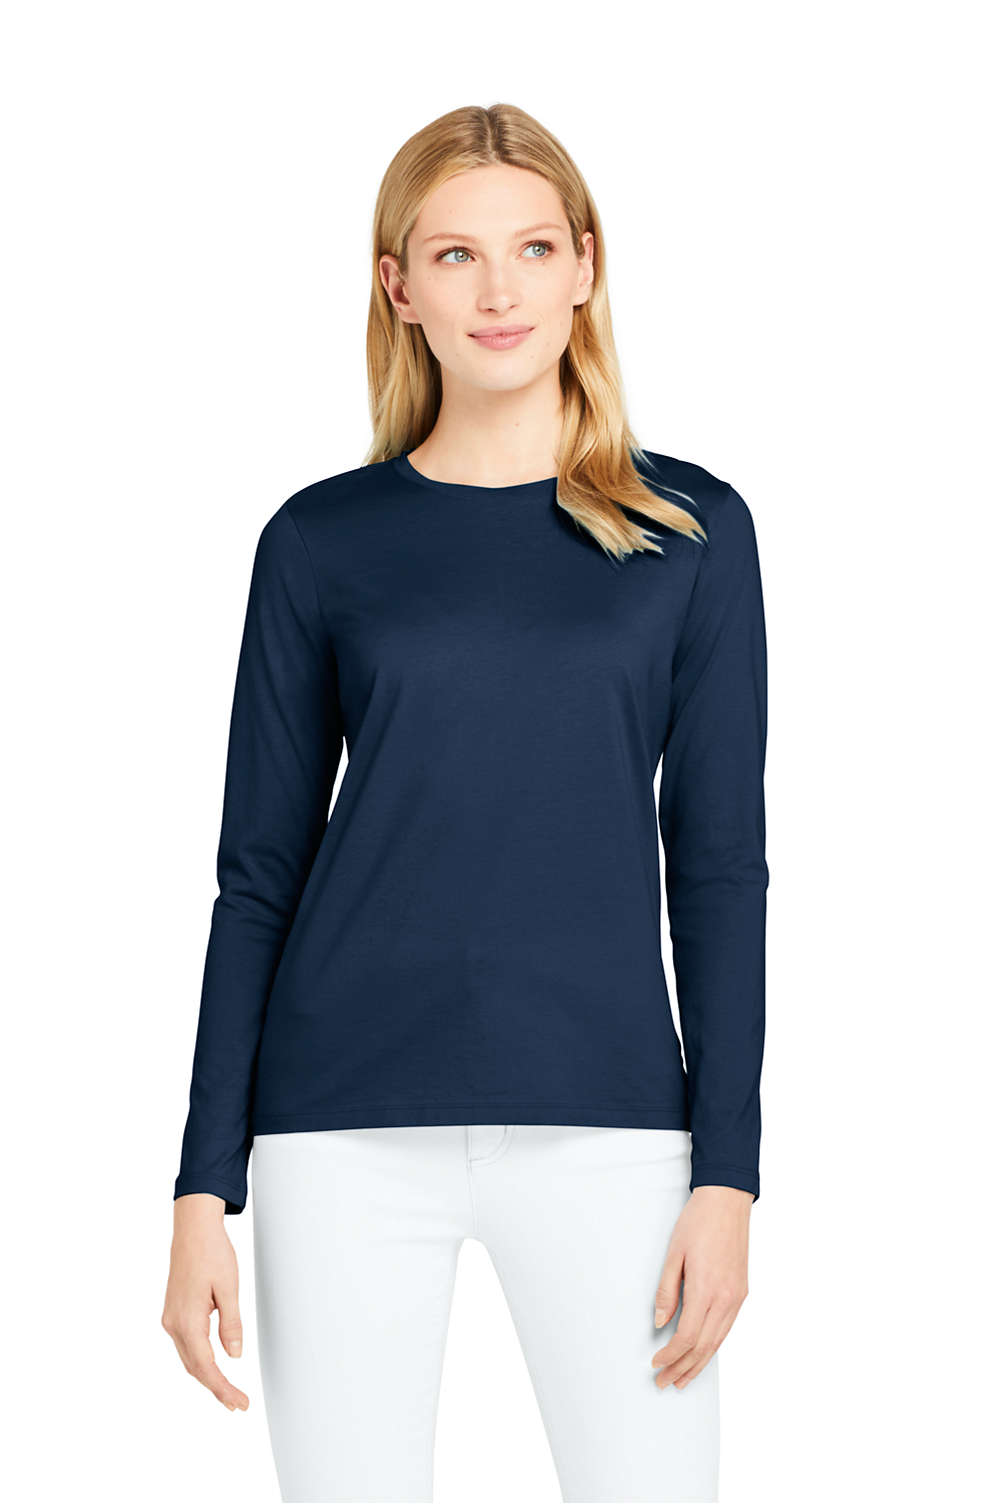 2ddd10433f0 Women's Relaxed Fit Supima Cotton Crewneck Long Sleeve T-shirt from Lands'  End